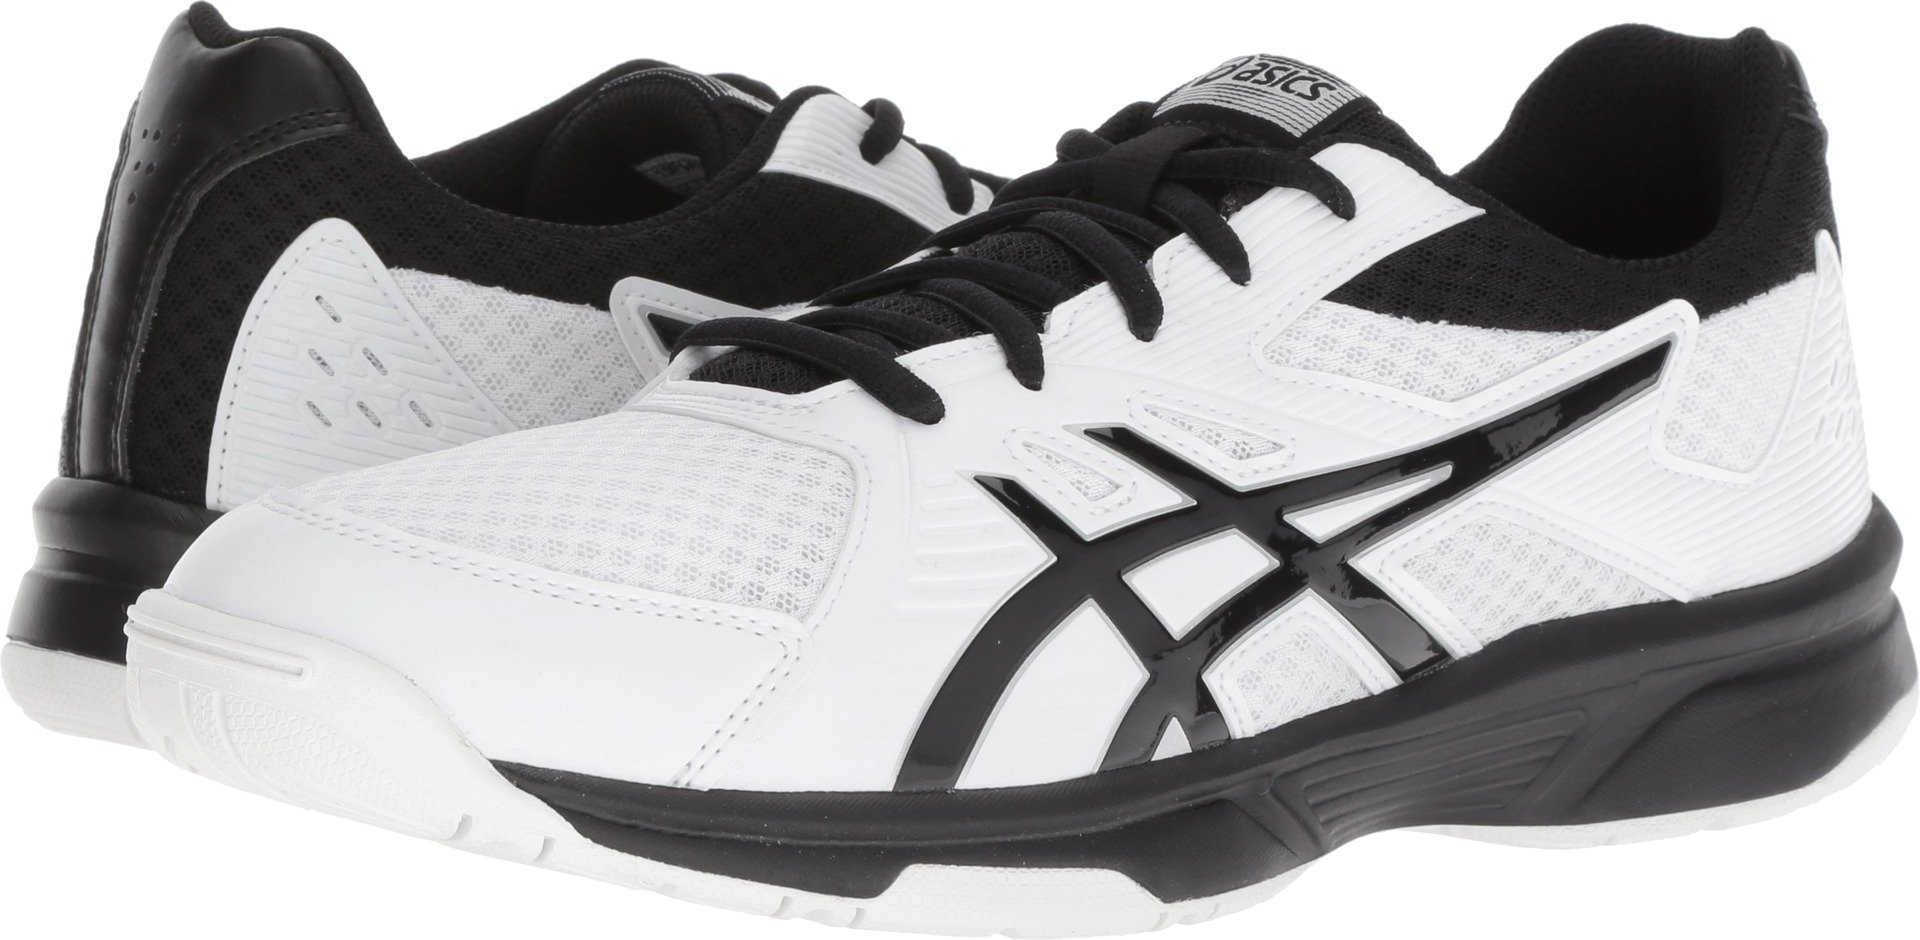 ASICS Men's Upcourt 3 Volleyball Shoes, White/Black, Size 6.5